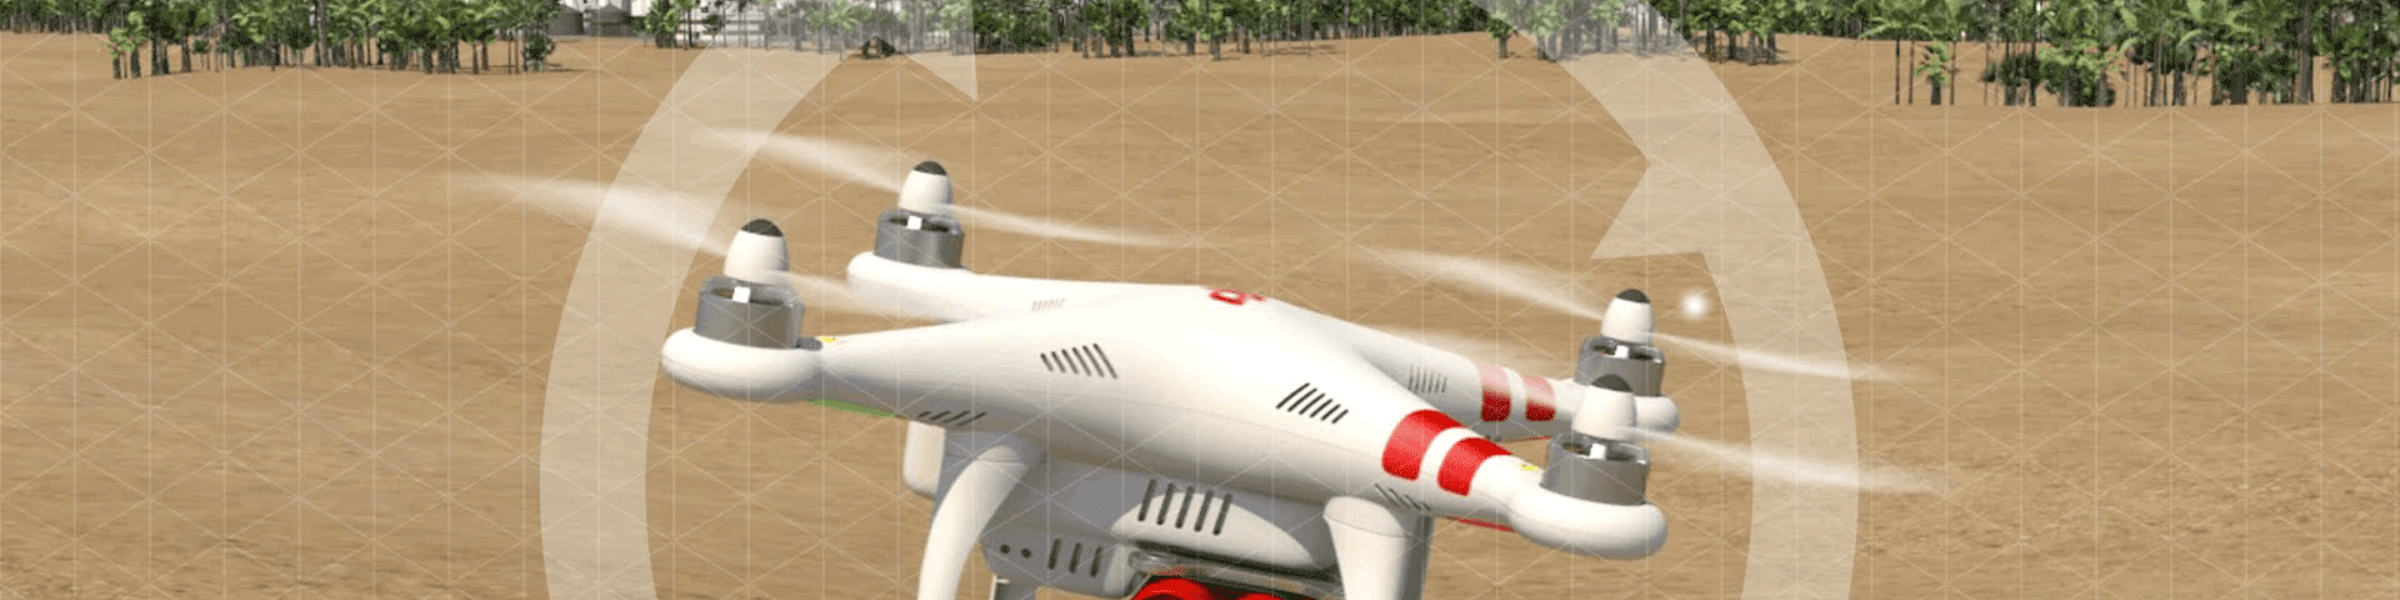 Prime-Drone-Major-Consultancy-Services-Solutions-Hub